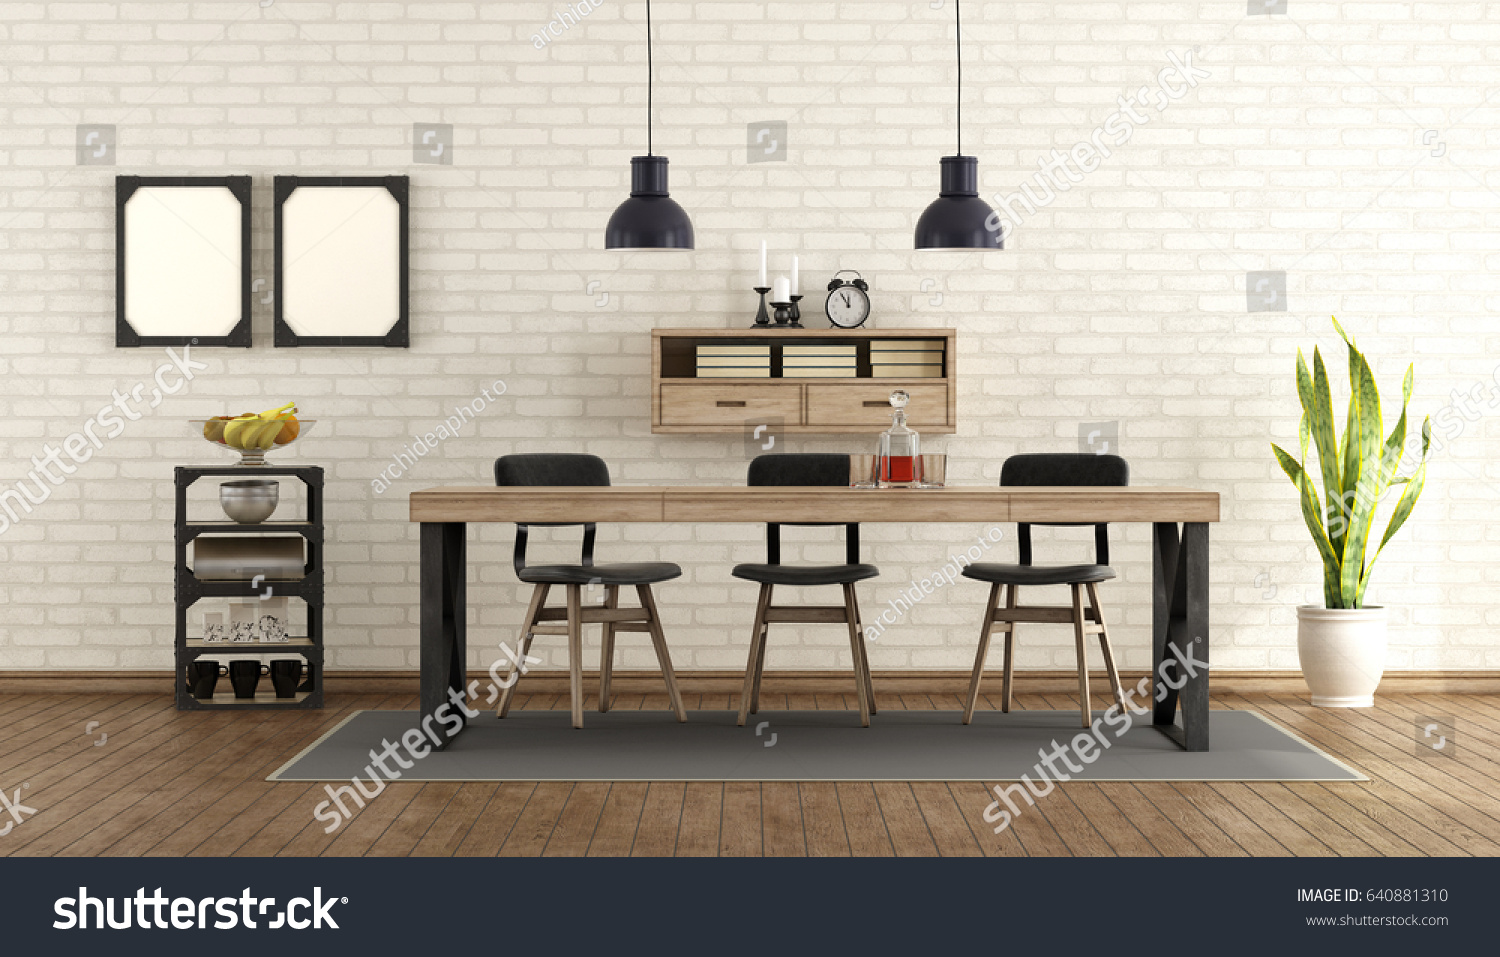 industrial dining room table and chairs. Dining Room In Industrial Style With Table And Chairs - 3d Rendering L